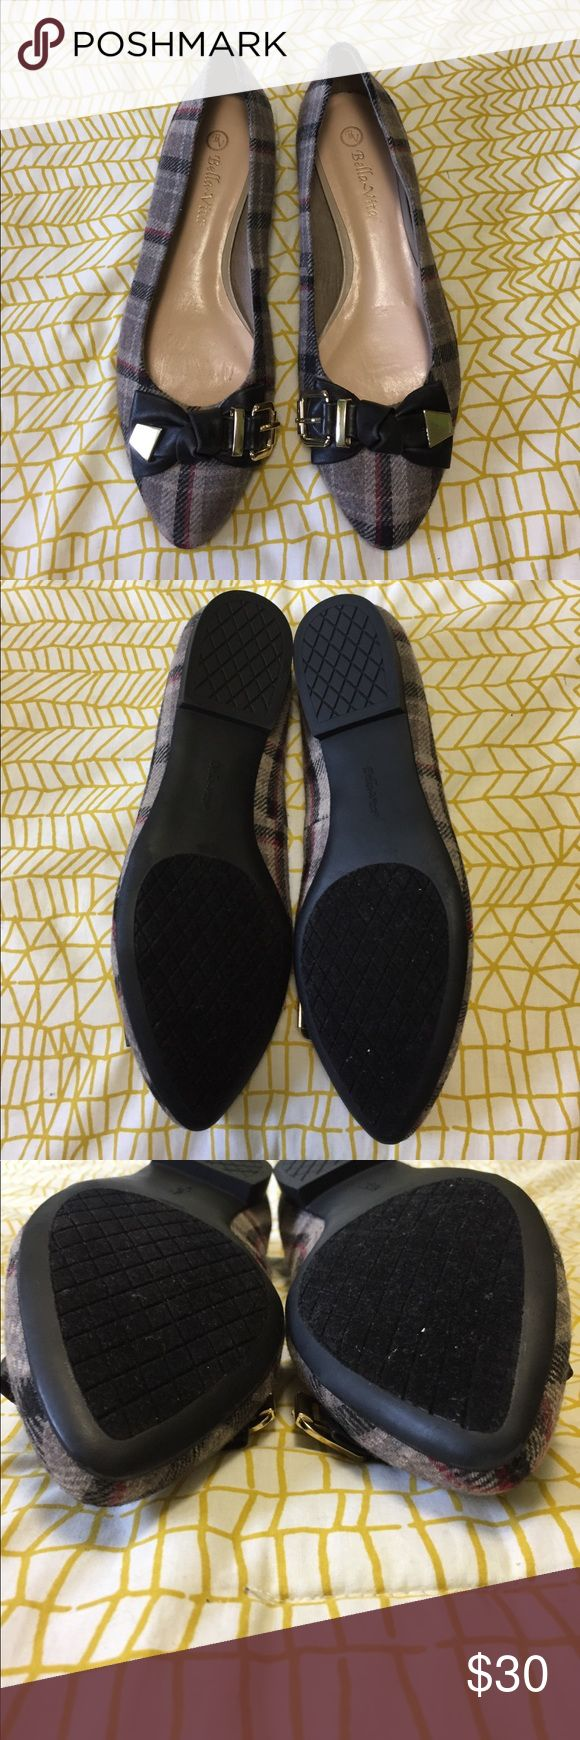 Bella Vita plaid flats Bella Vita Plaid Flats. Size 10. EXCELLENT like new condition. Leather bow with gold embellishment. Bella Vita Shoes Flats & Loafers